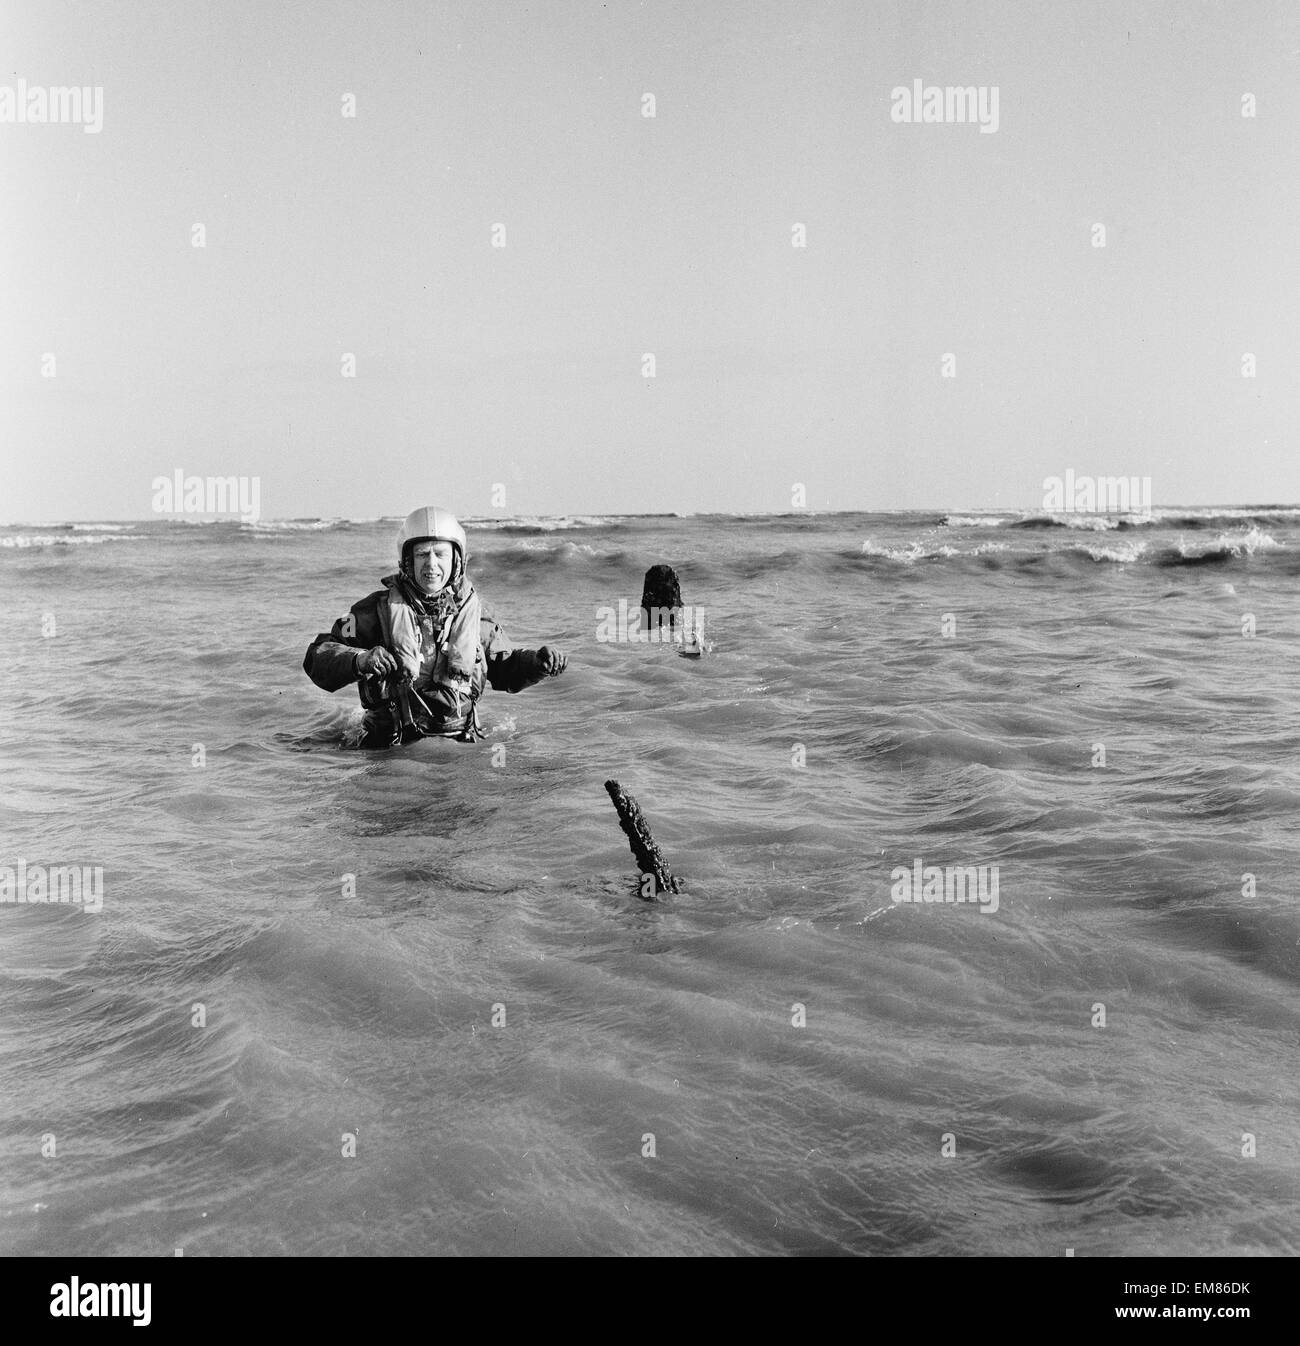 Master Navigator Colin Walsh of the RAF Air Sea Rescue service stands waist high in the water on a sandbank at Goodwin - Stock Image